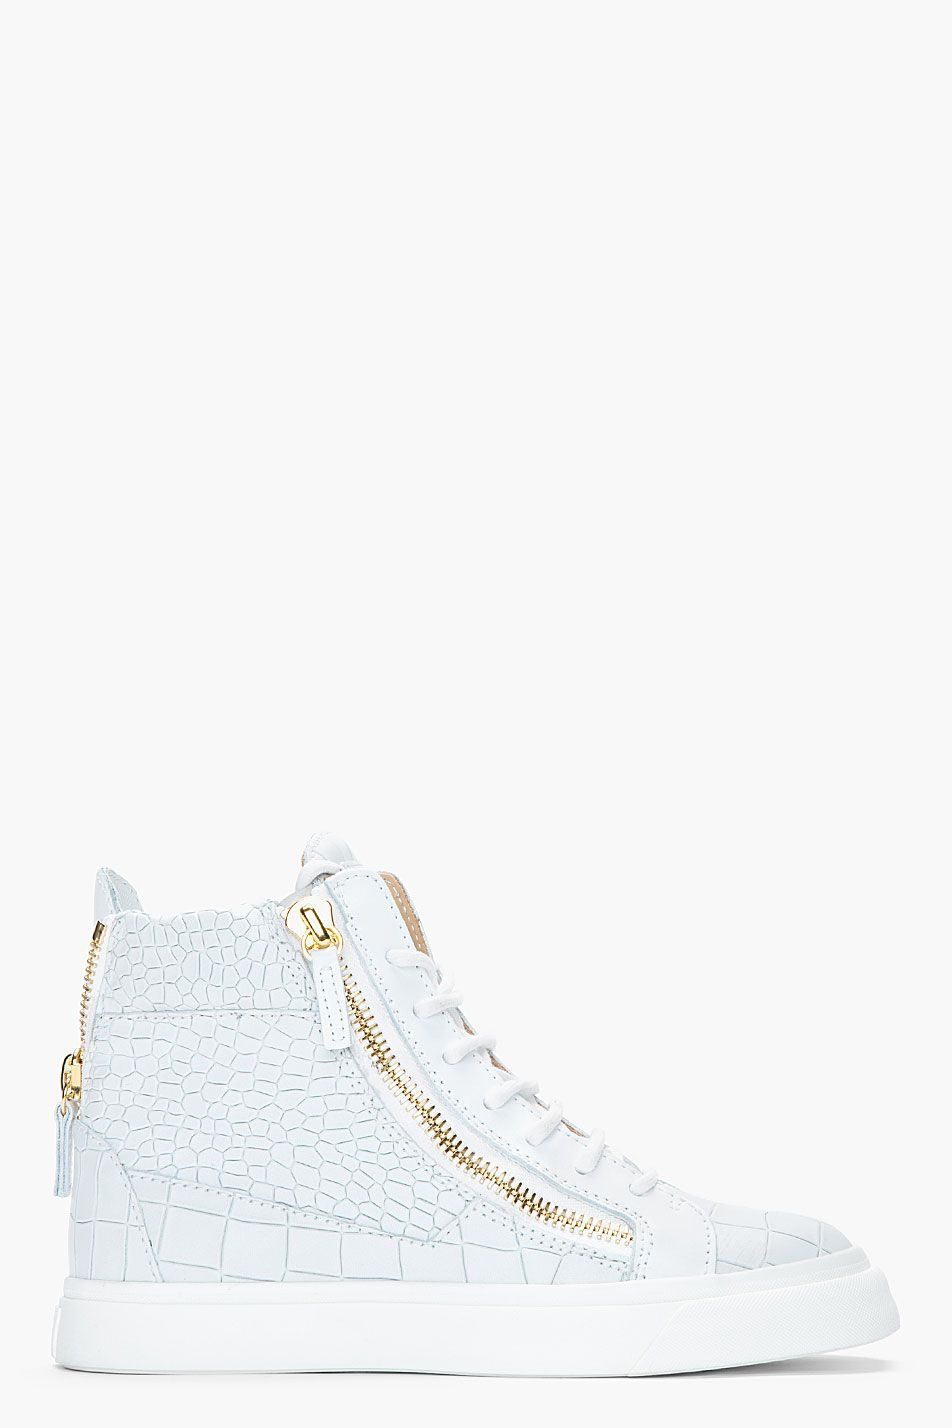 e1b3459341221 Giuseppe Zanotti Oyster Grey Croc embossed Leather London Sneakers ...